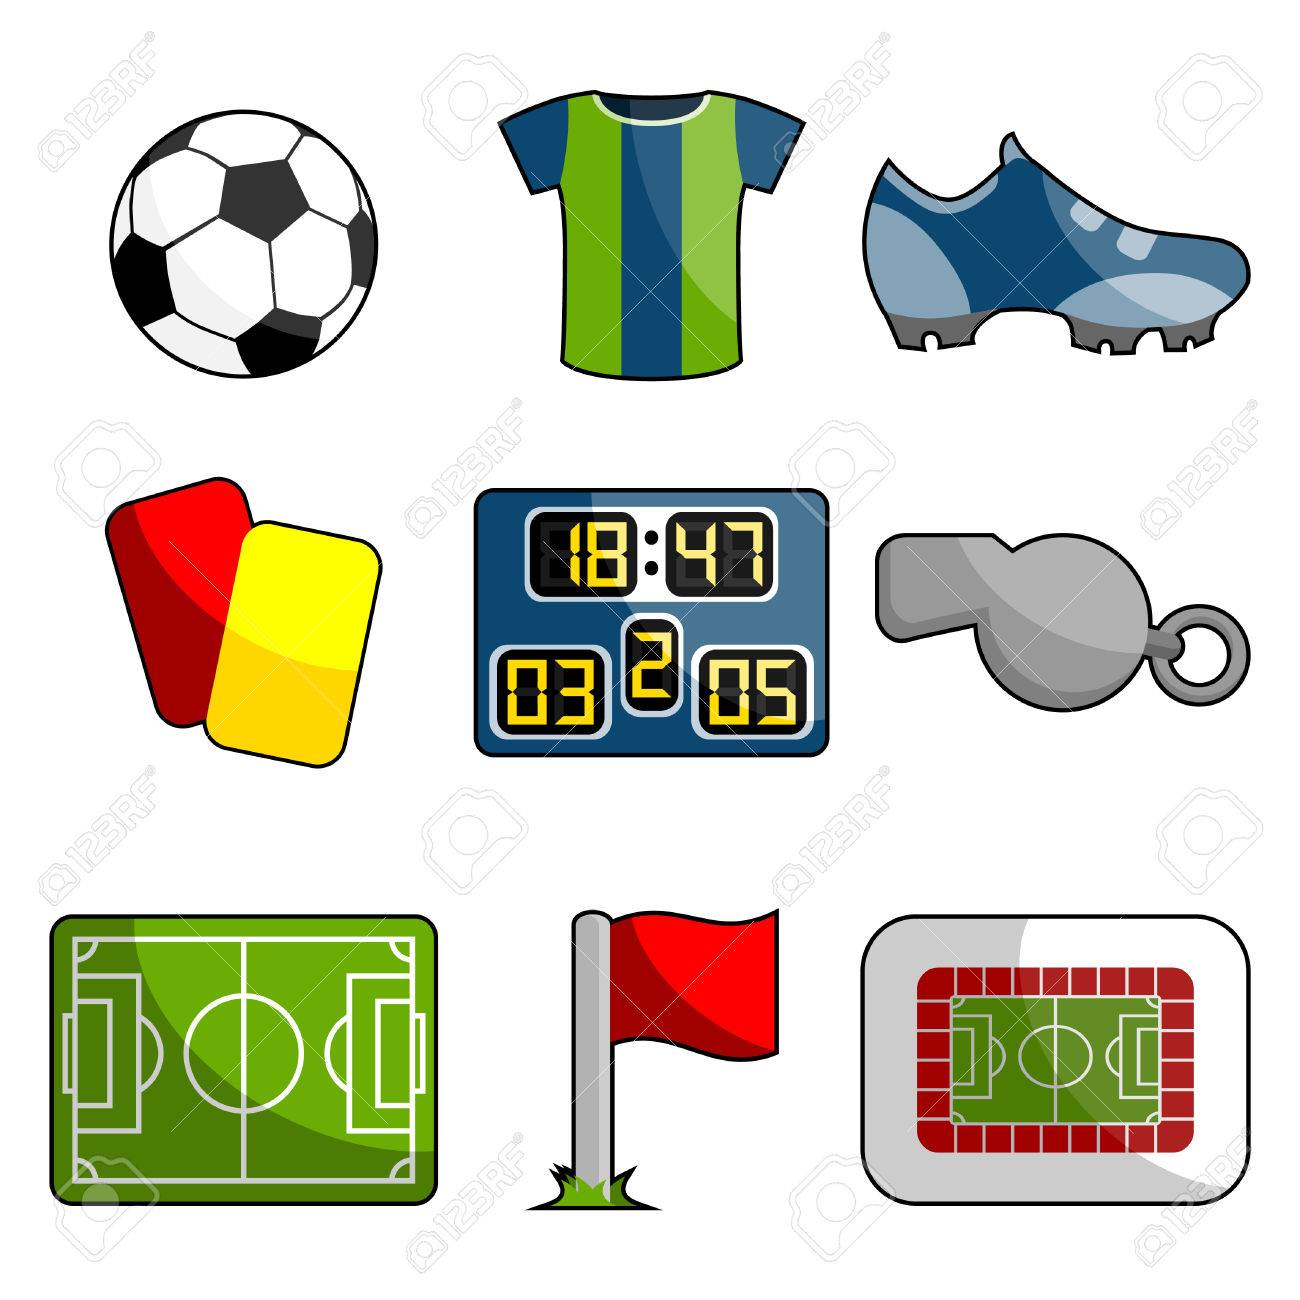 soccer object icon set Stock Vector - 8717909